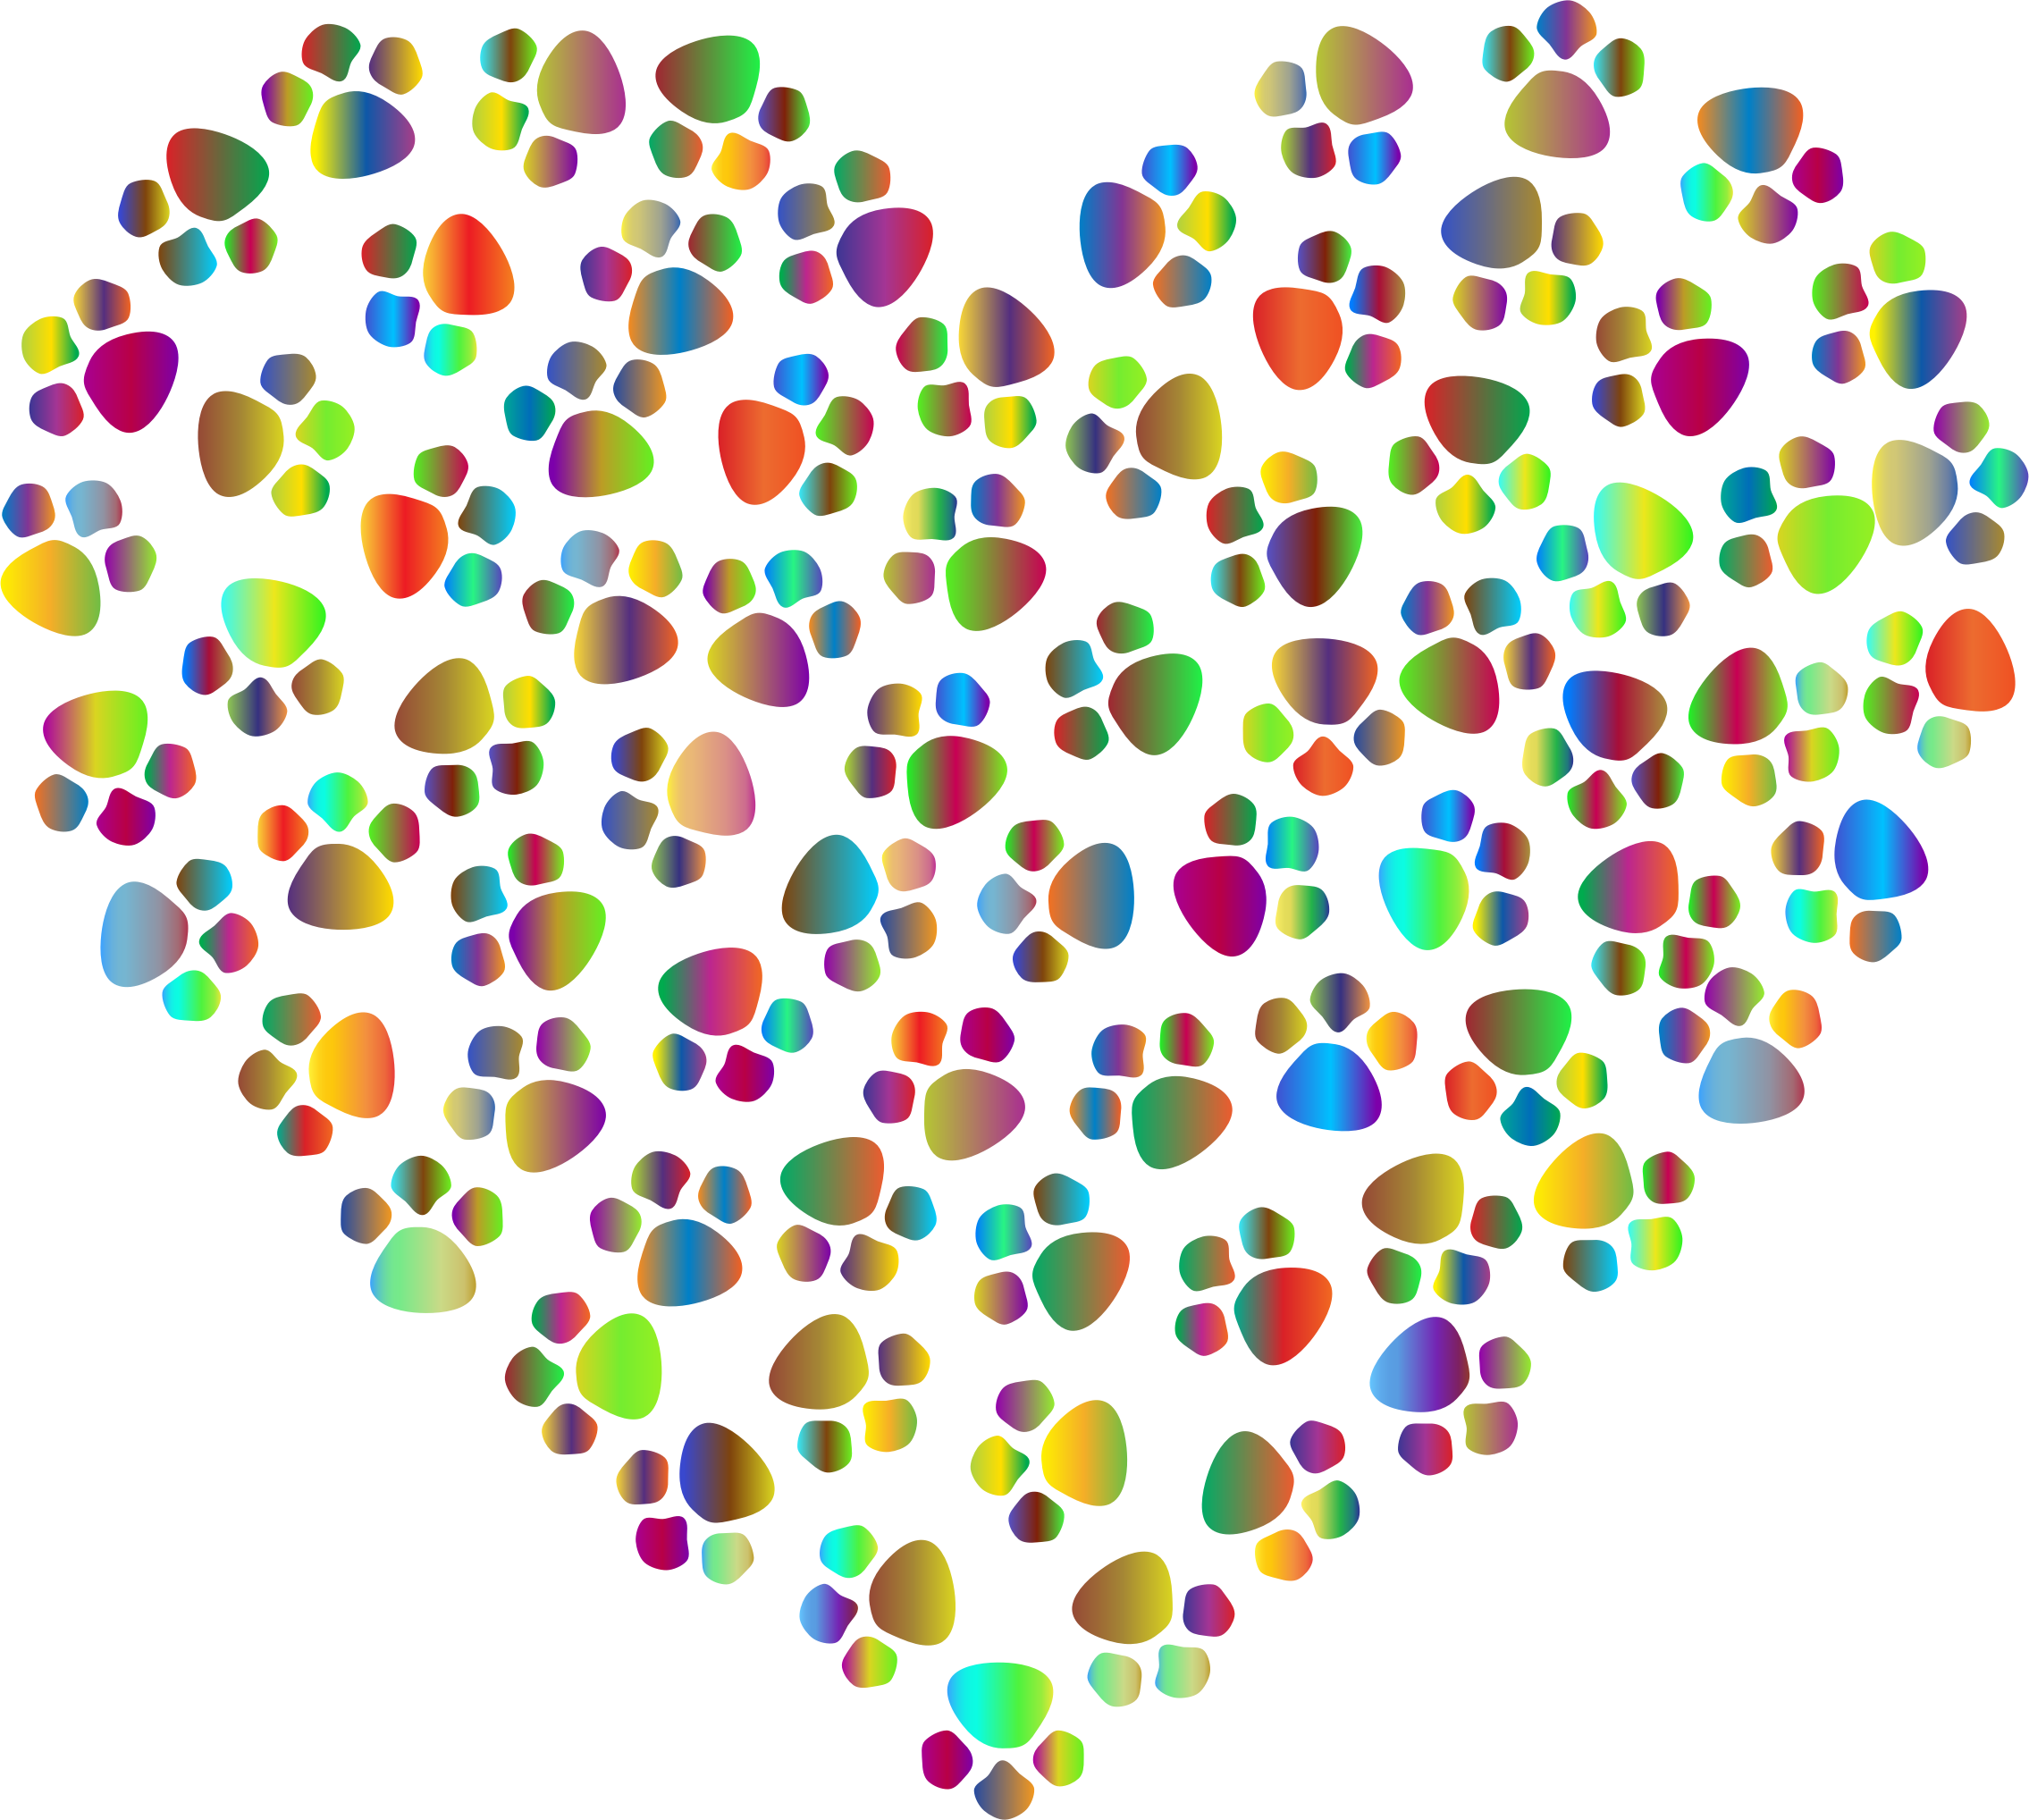 Paw heart png. Prismatic prints icons free